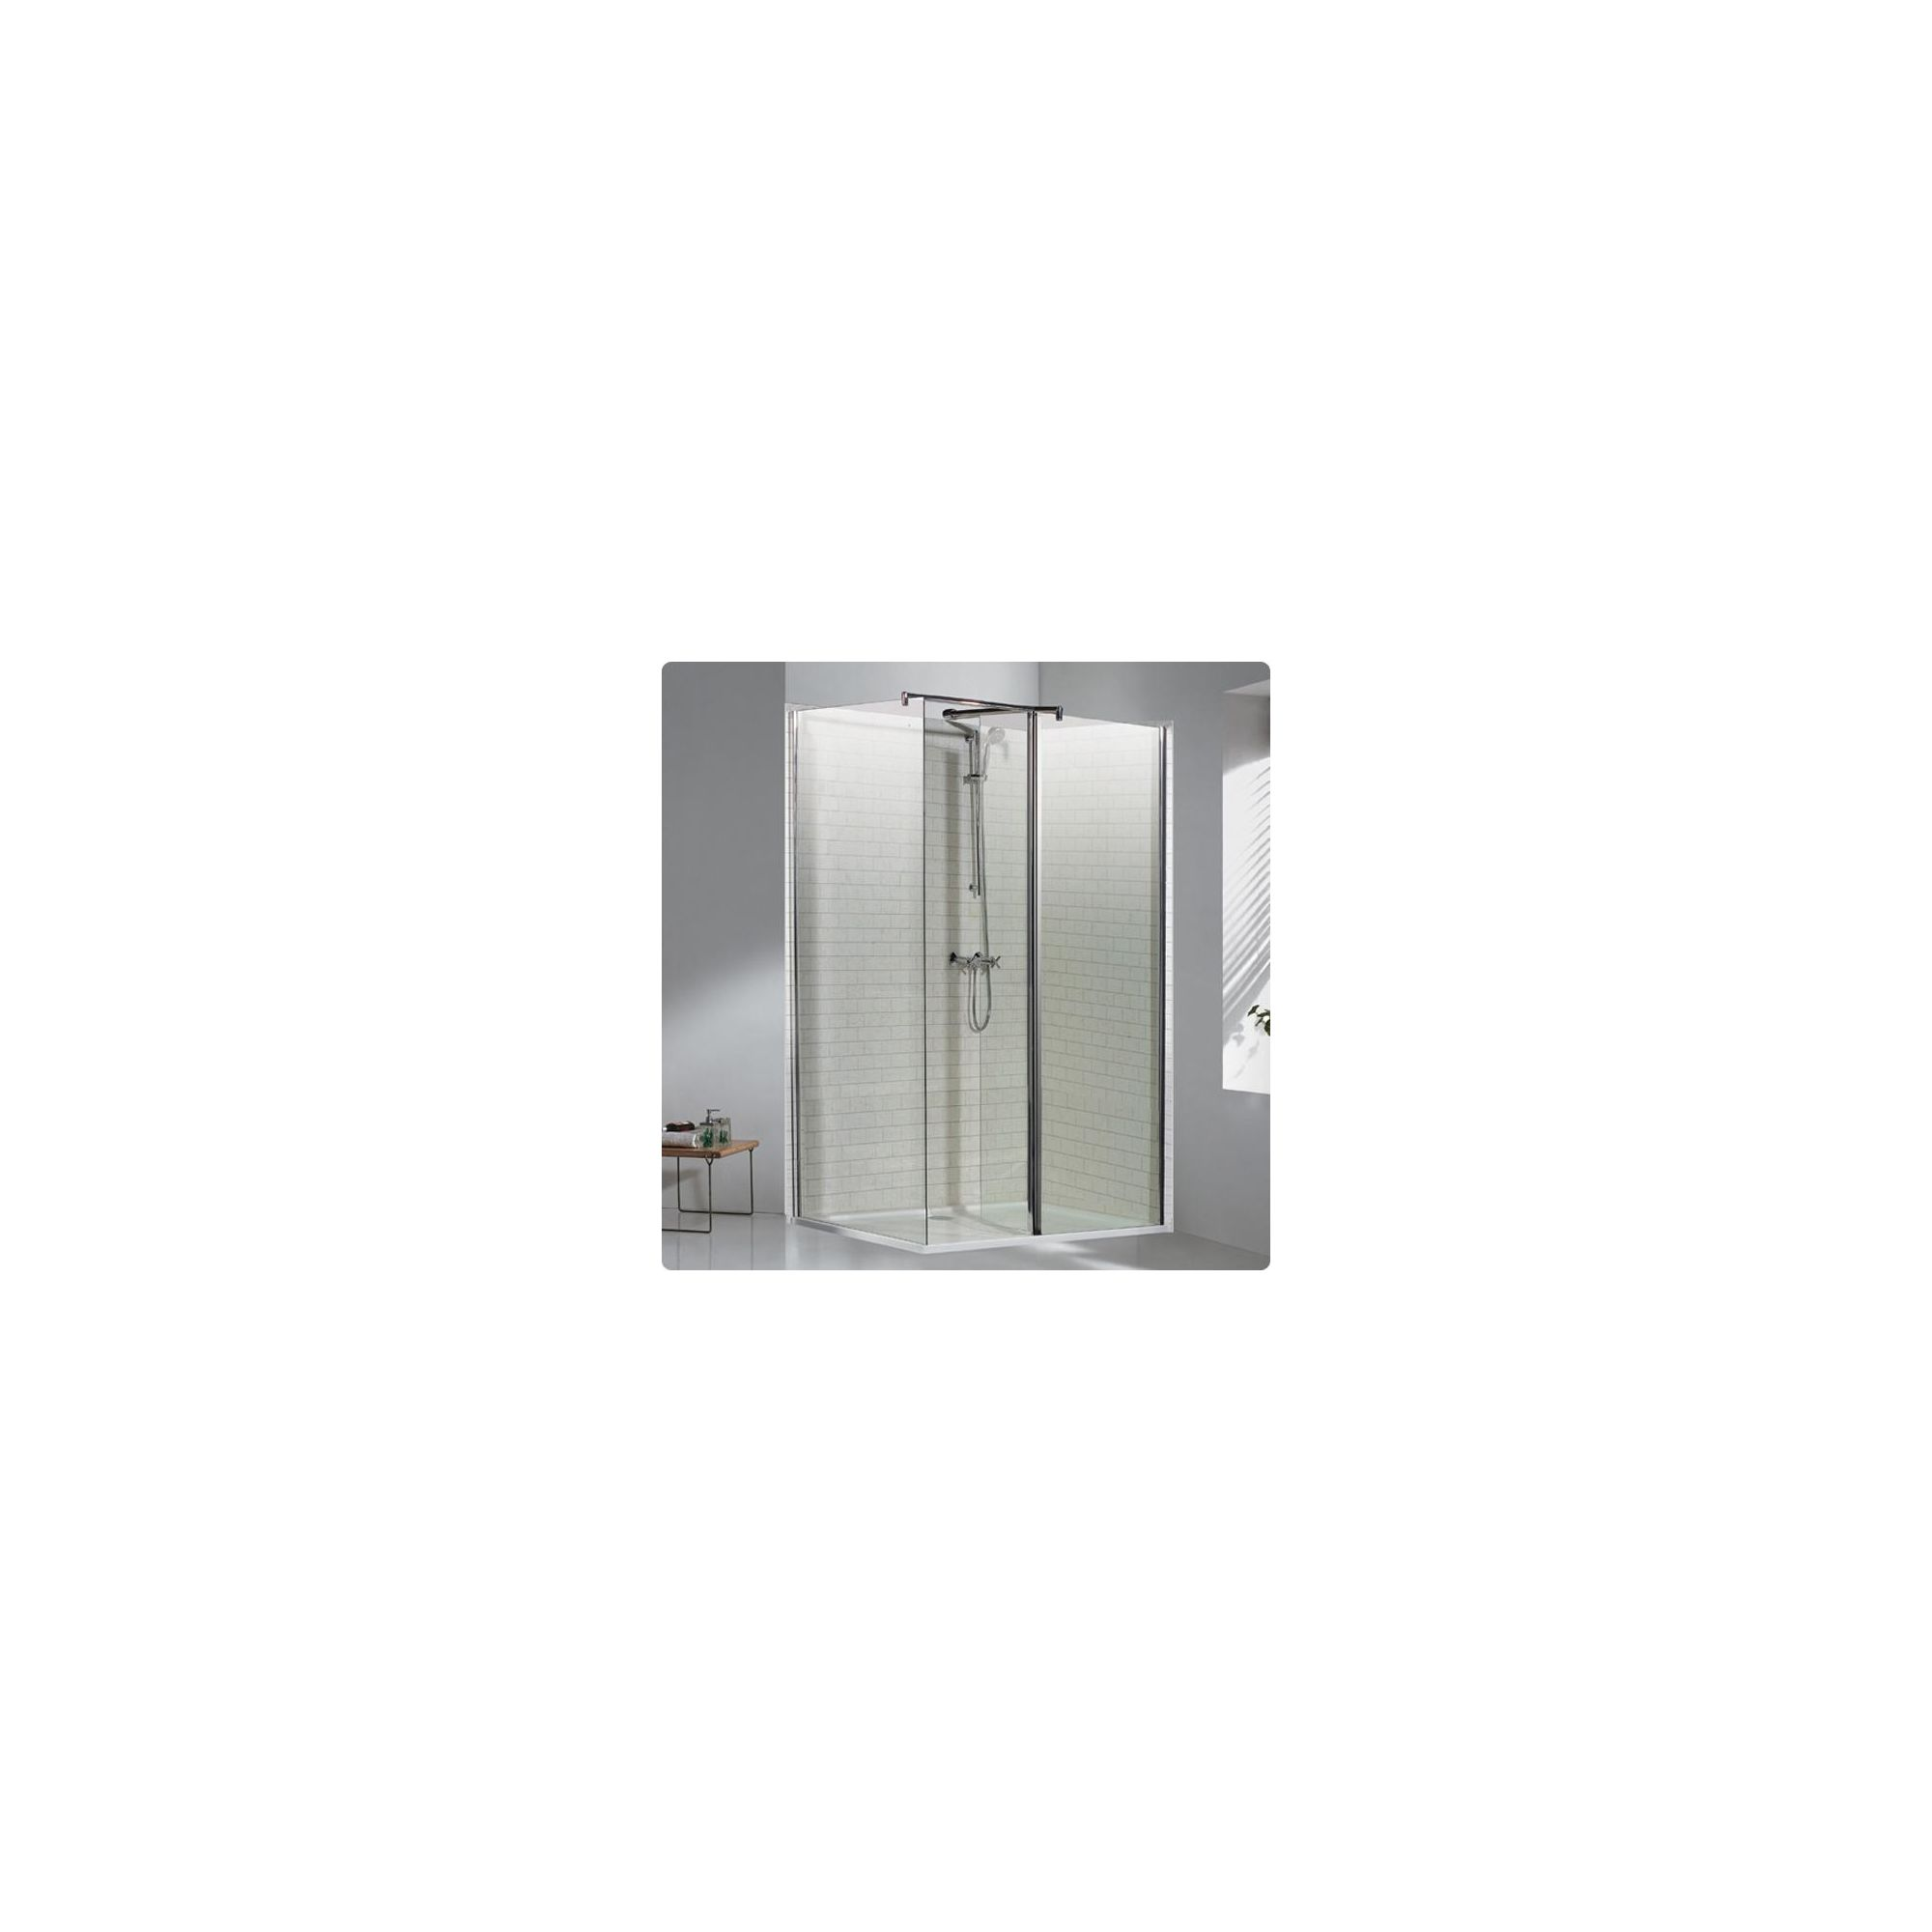 Duchy Choice Silver Walk-In Shower Enclosure 1700mm x 760mm (Complete with Tray), 6mm Glass at Tesco Direct